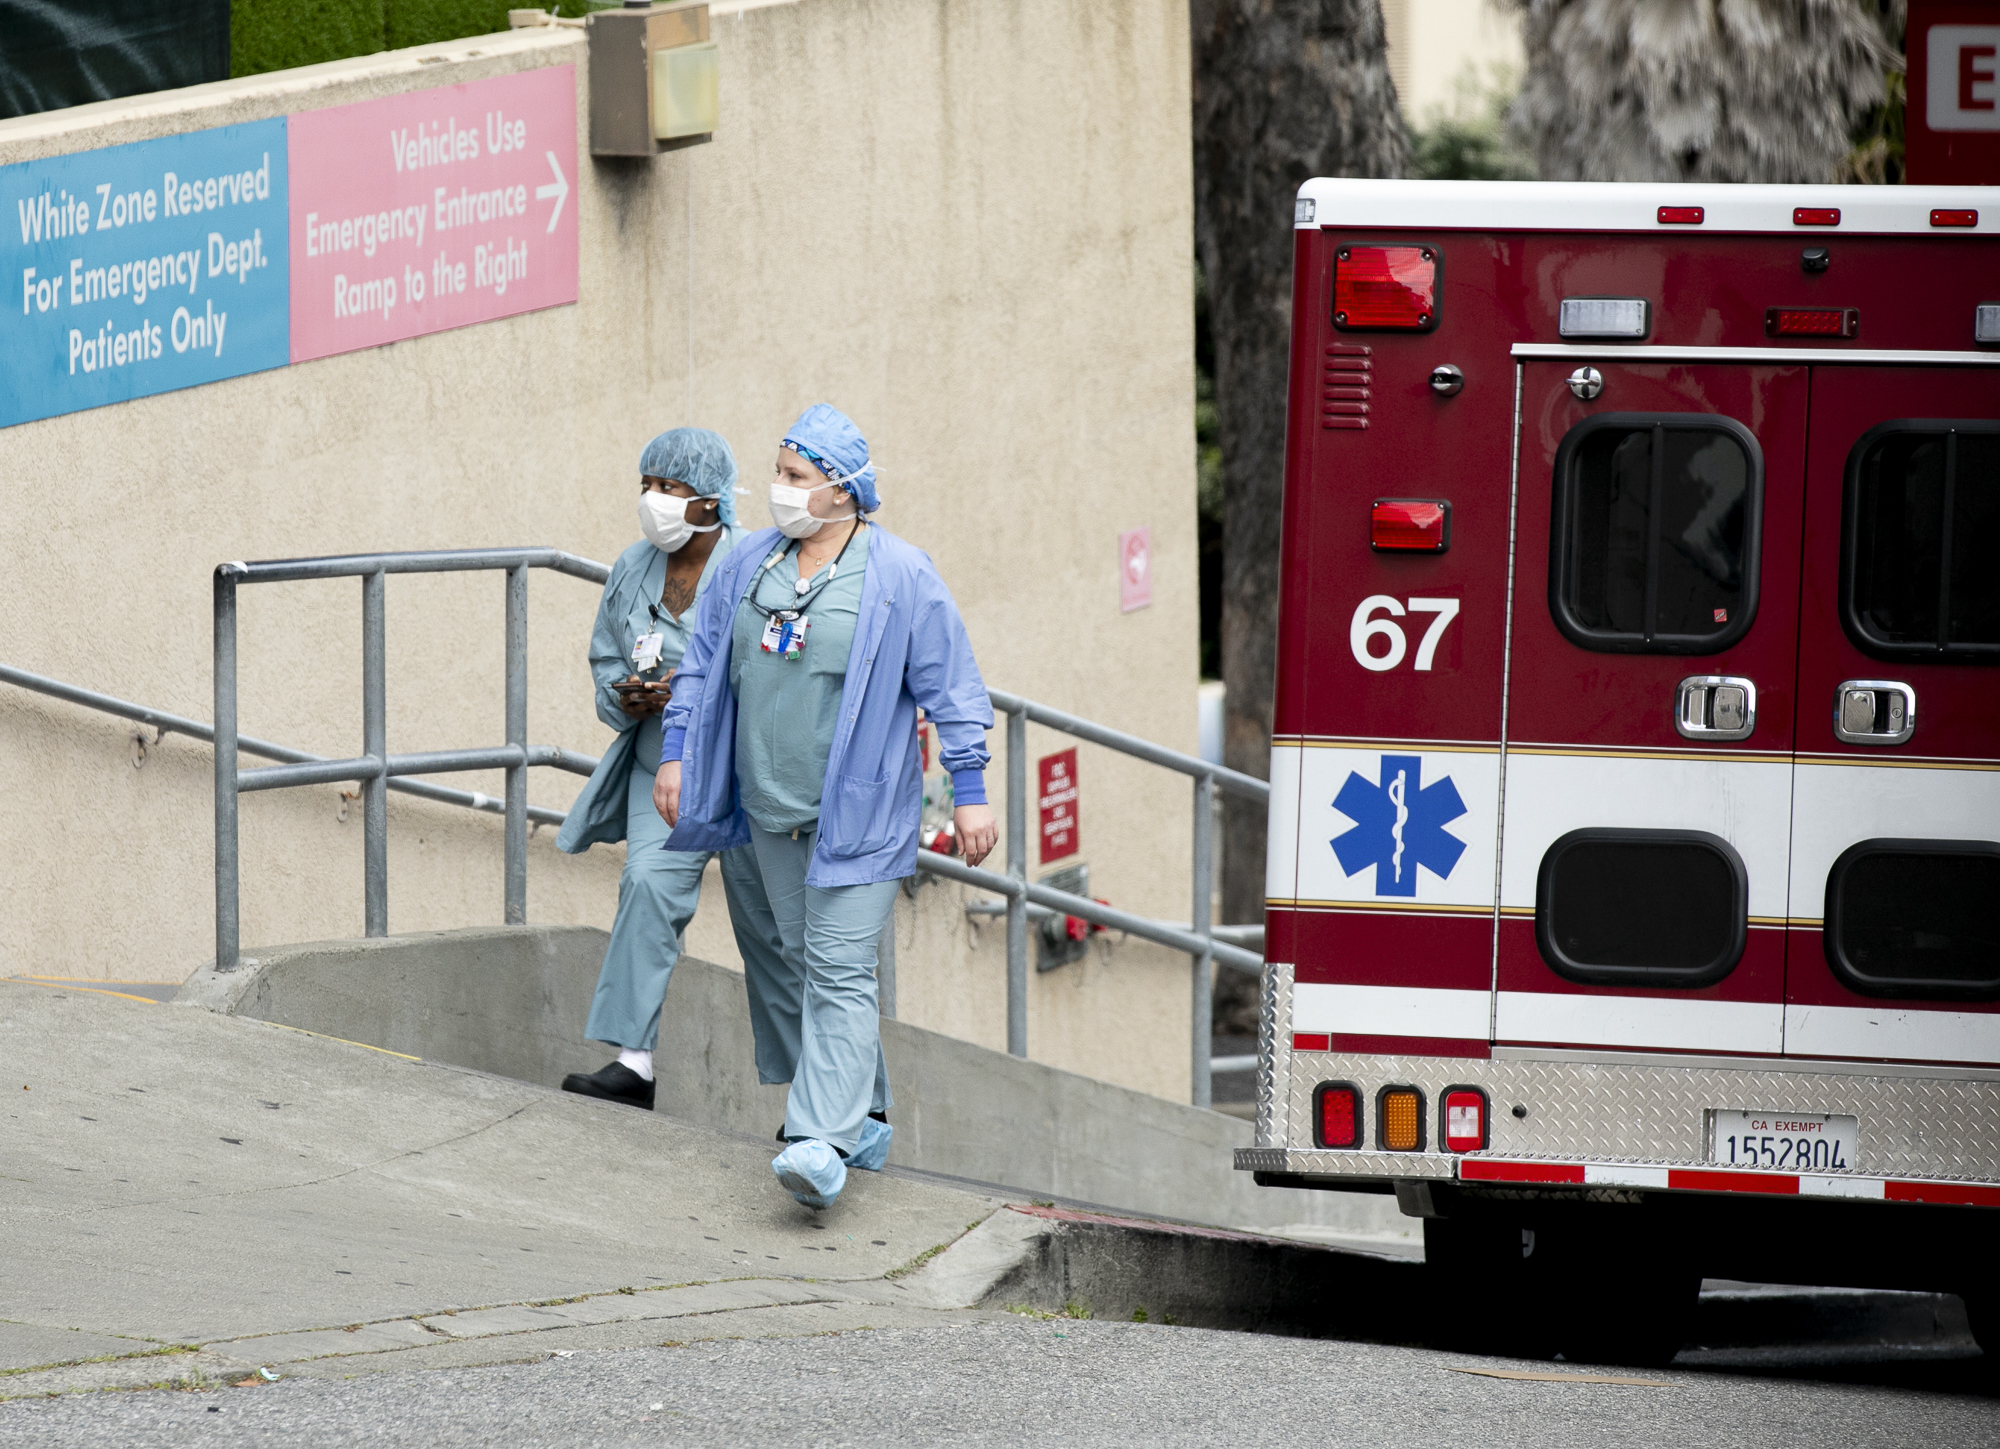 Healthcare workers at a Kaiser hospital in San Francisco on April 9, 2020. Today, Gov. Gavin Newsom announced that the state would make hotel rooms available to care providers in regions with high rates of COVID-19 infections who need to self-isolate. Photo by Anne Wernikoff for CalMatters